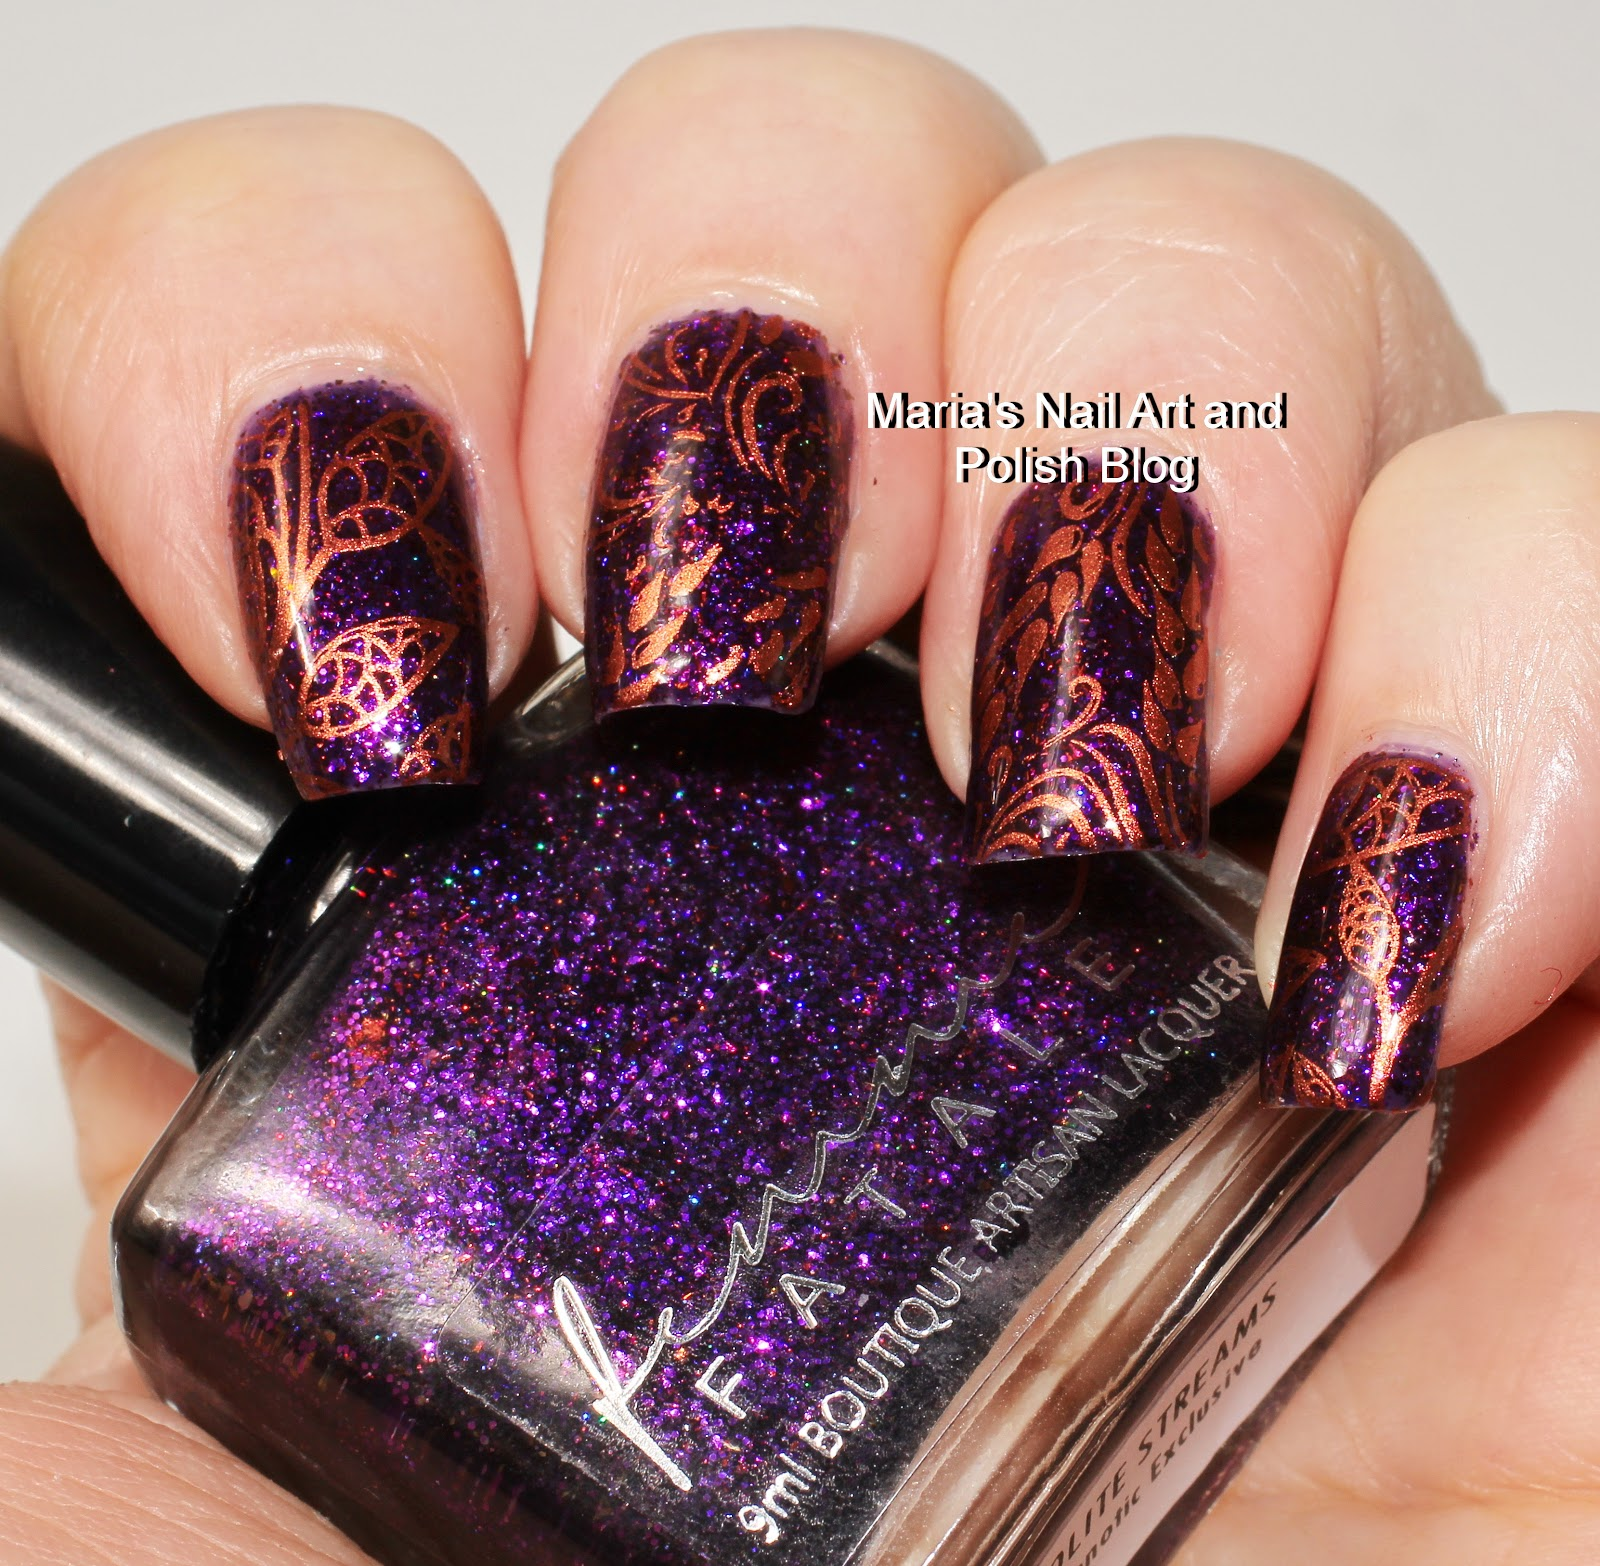 Marias nail art and polish blog the base is femme fatale iolite streams stamped with hit the bottle copper haired girl plate cici sisi jumbo series 5 plate 28 stamper fab ur nails prinsesfo Gallery